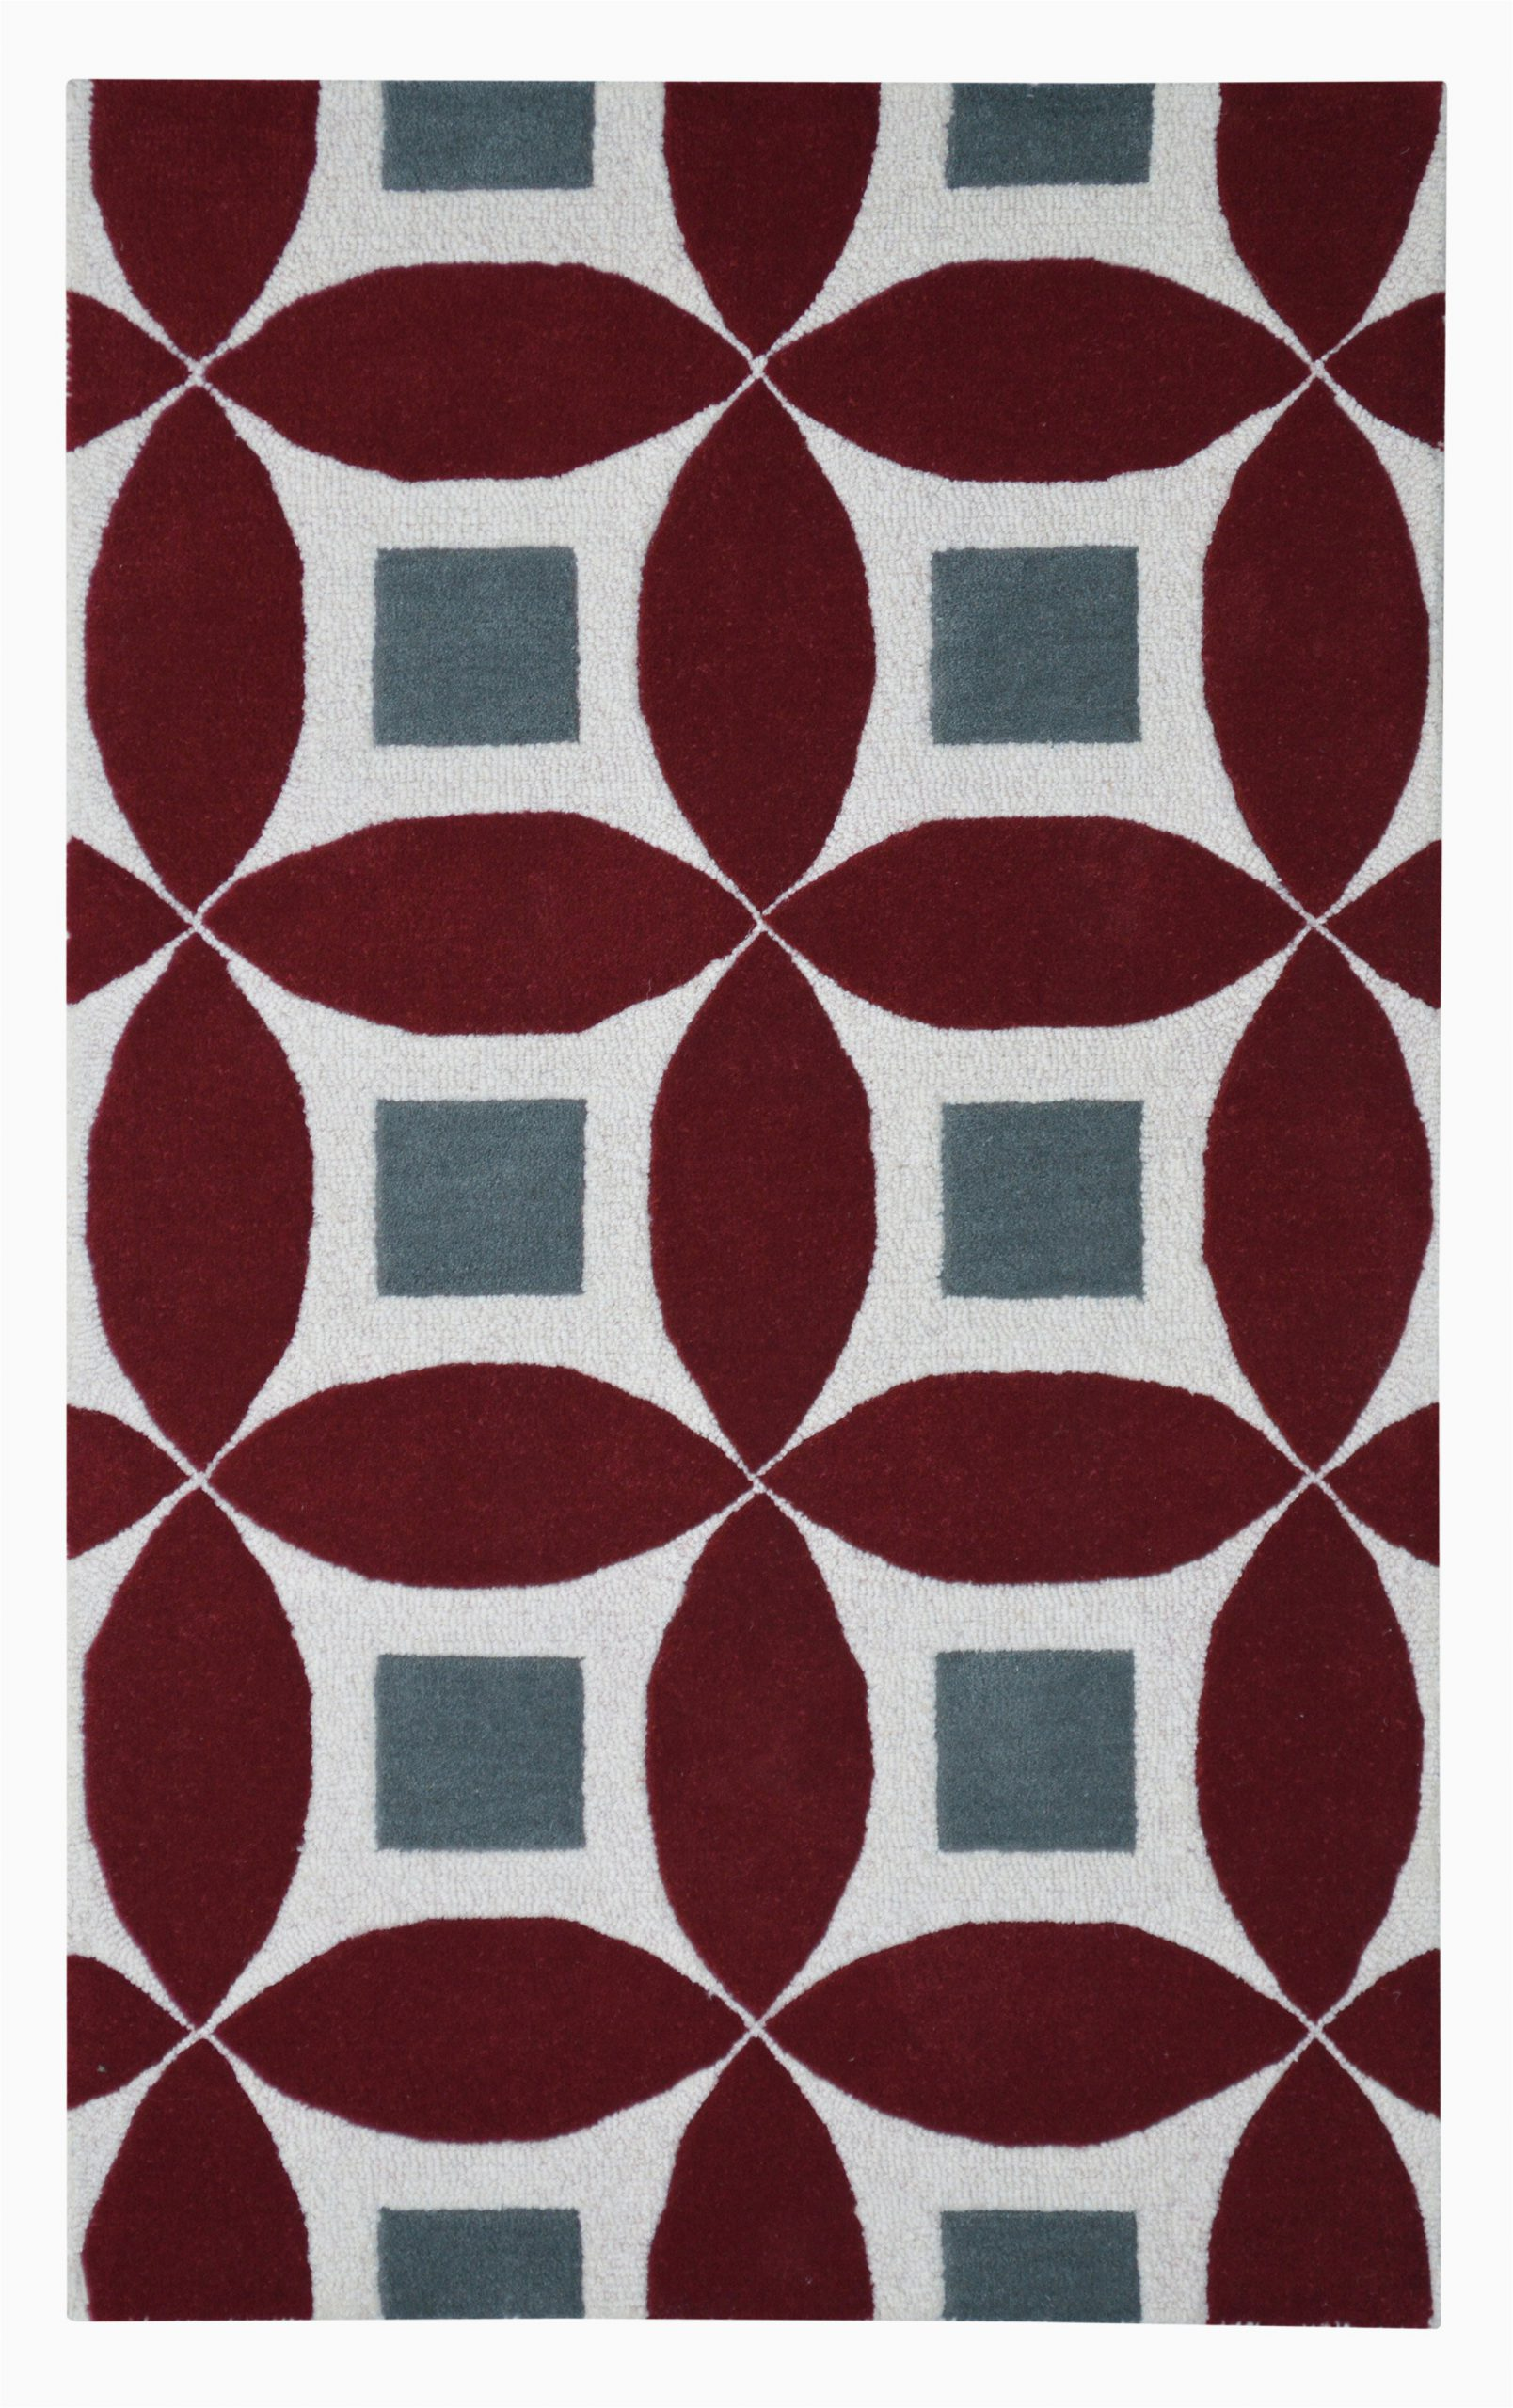 Maroon and Gray area Rugs Henley Hand Tufted Burgundy Gray area Rug